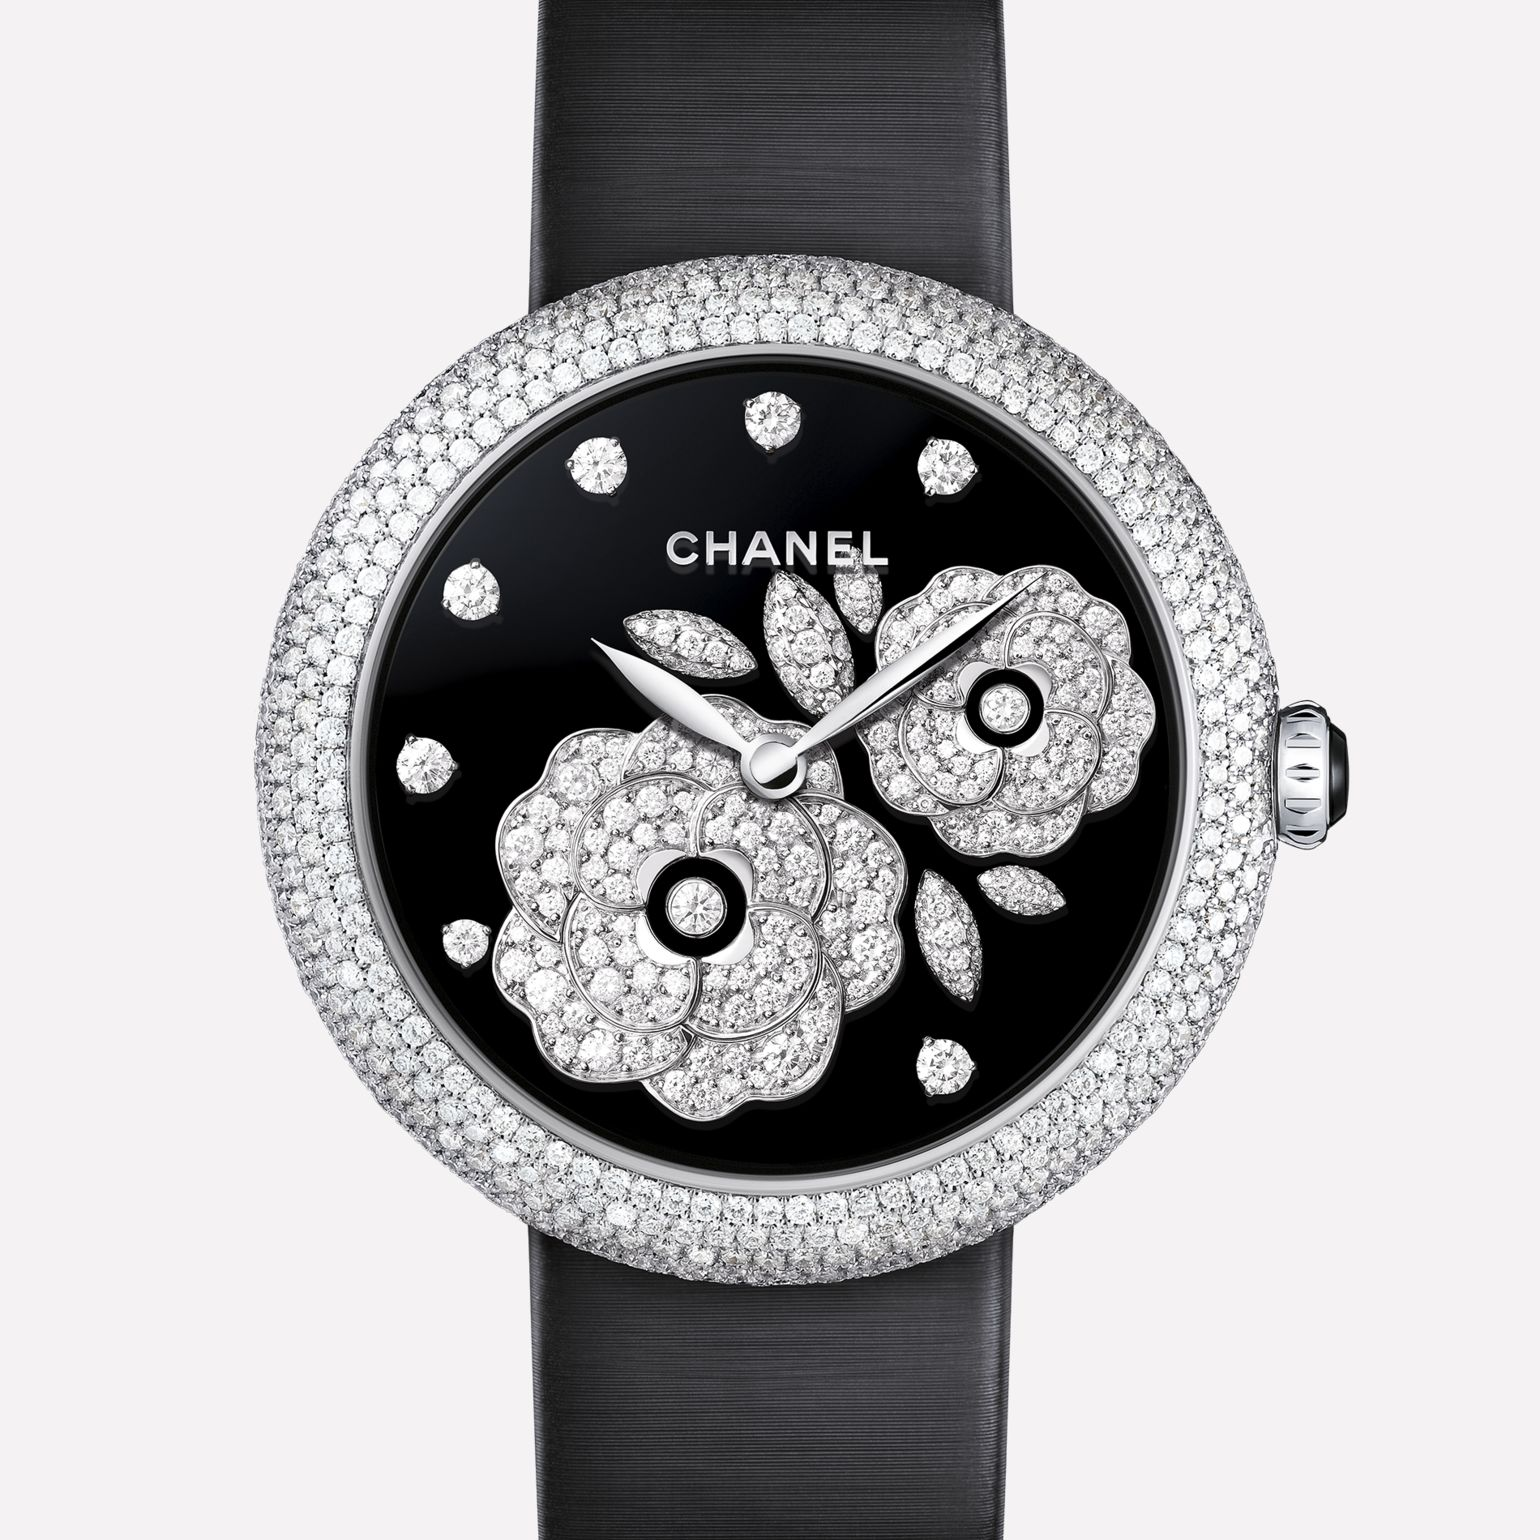 Mademoiselle Privé Bouton de Camélia jewellery - Grand Feu black enamel and diamonds